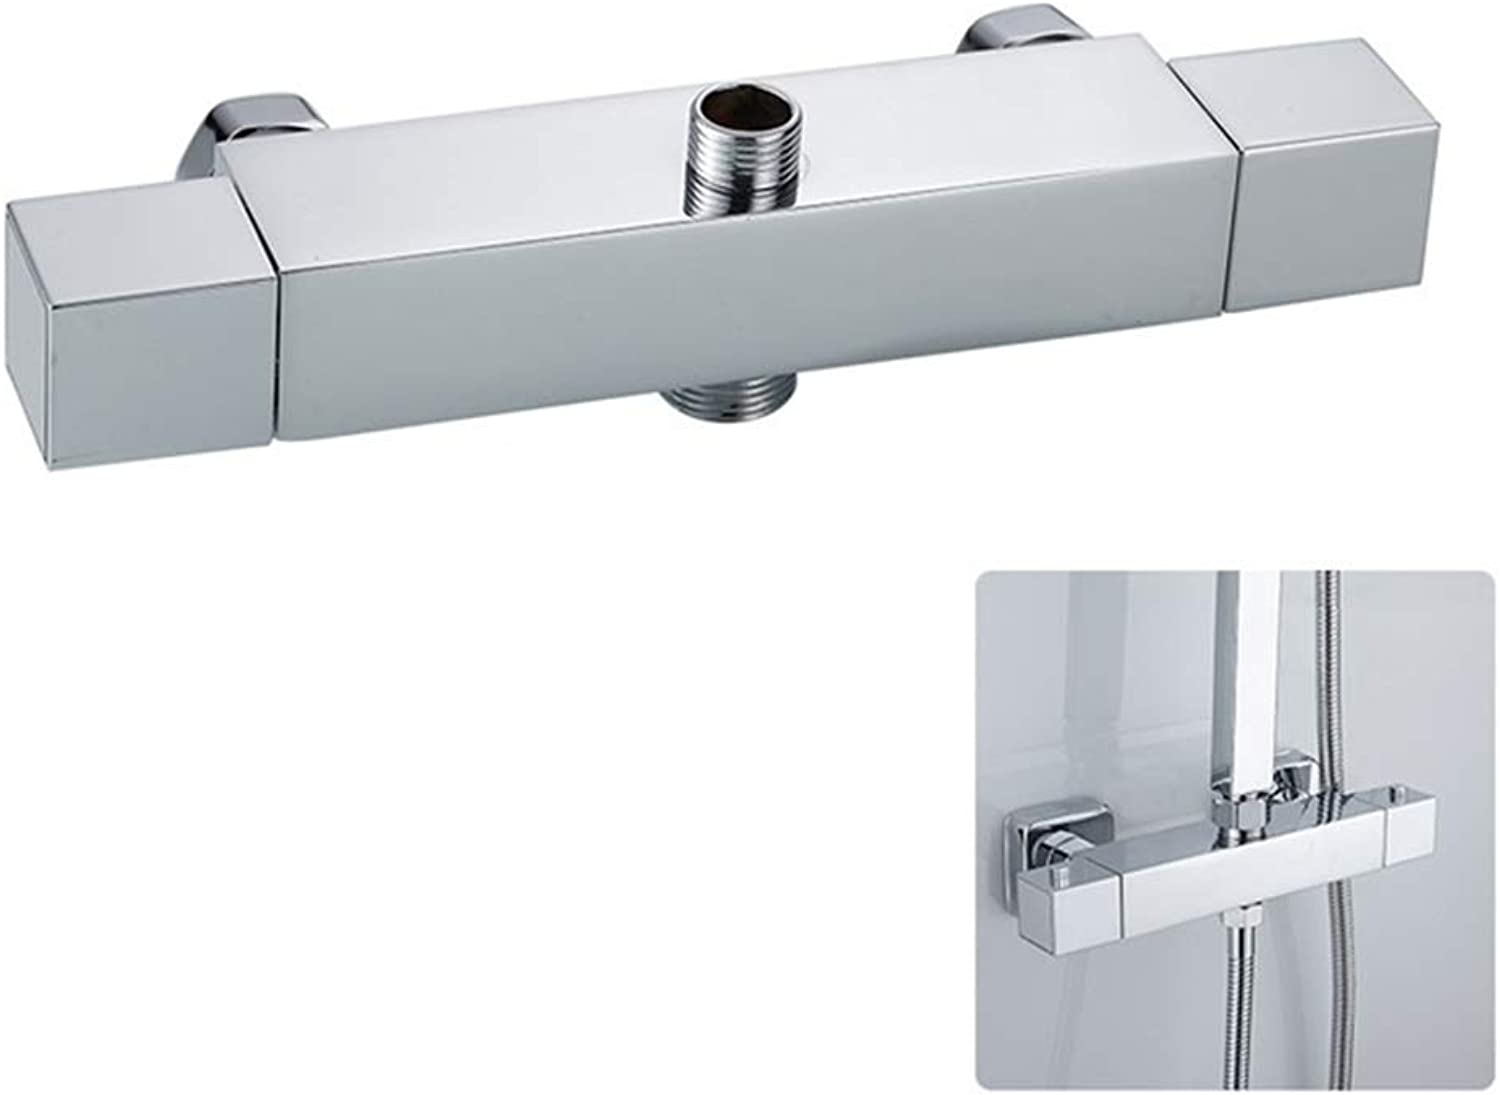 Homeofying Square Intelligent Thermostatic Double Outlet Shower Faucet Bathroom Angle Valve 1